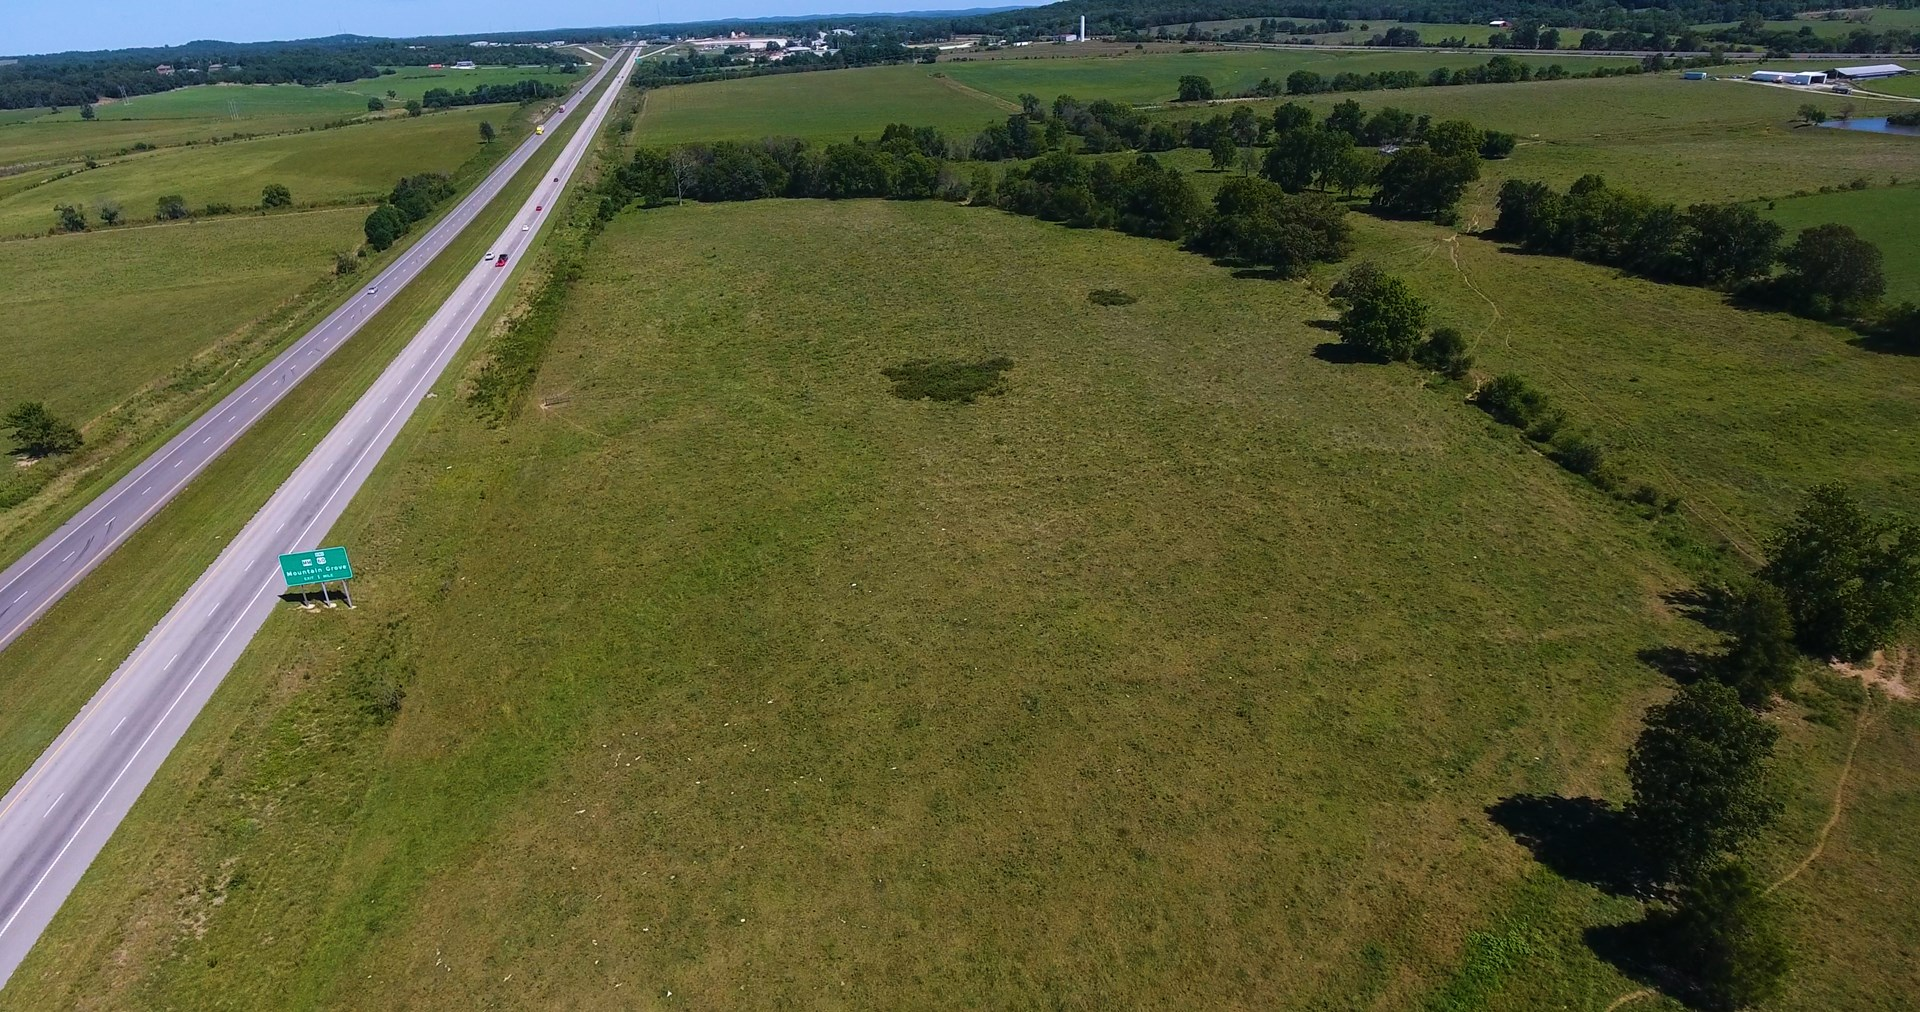 Commercial/Industrial Development Land with Highway Frontage